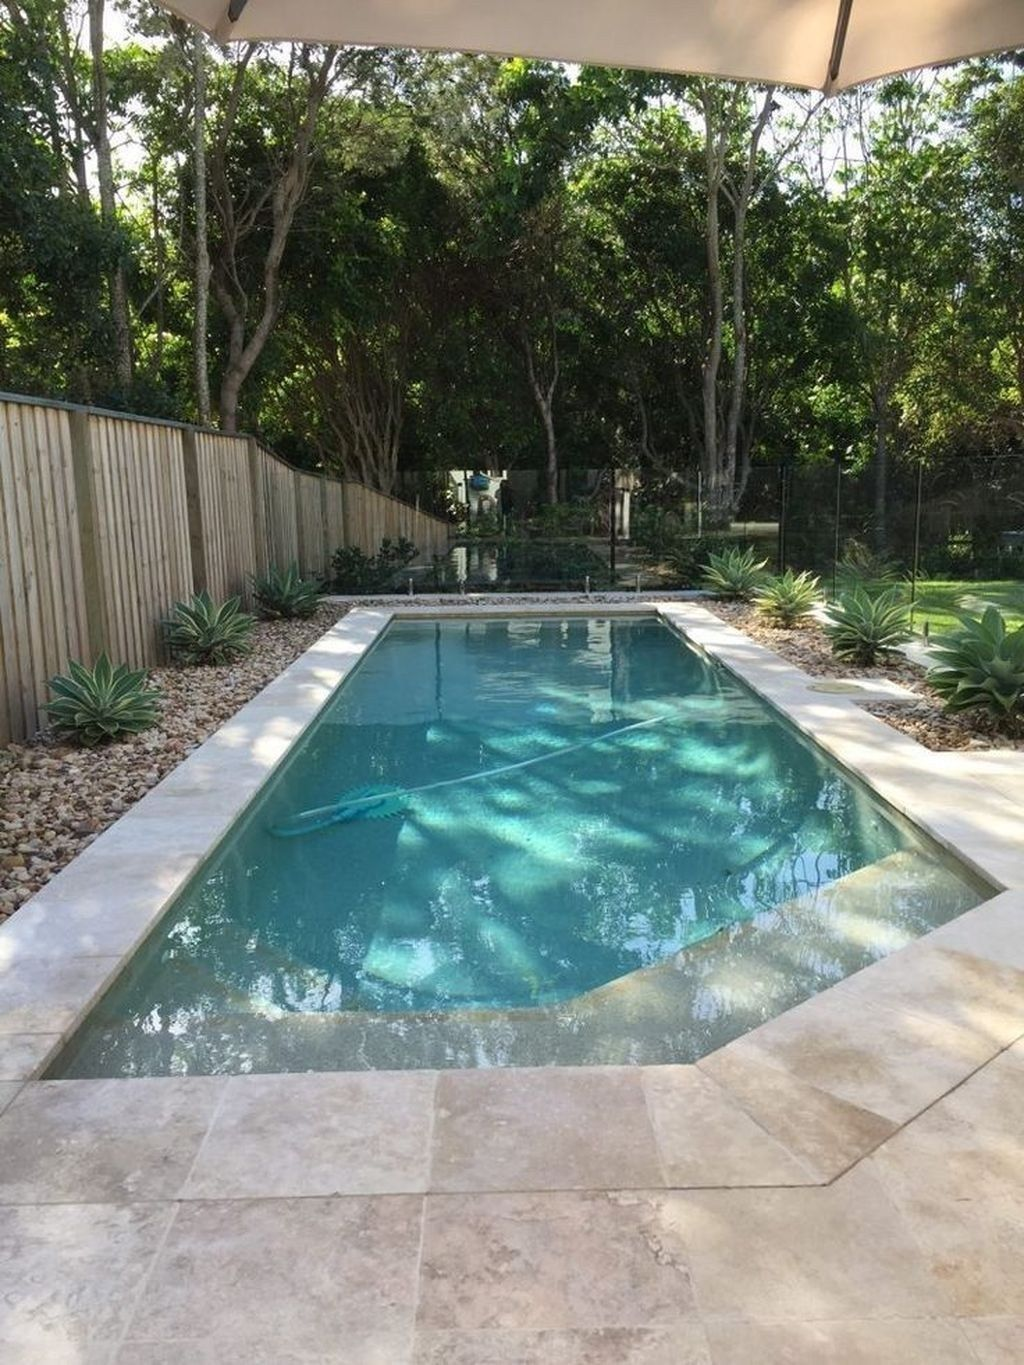 42 Cheap Small Pool Ideas For Backyard In 2020 In 2020 Small Backyard Pools Small Pool Design Luxury Pools Backyard